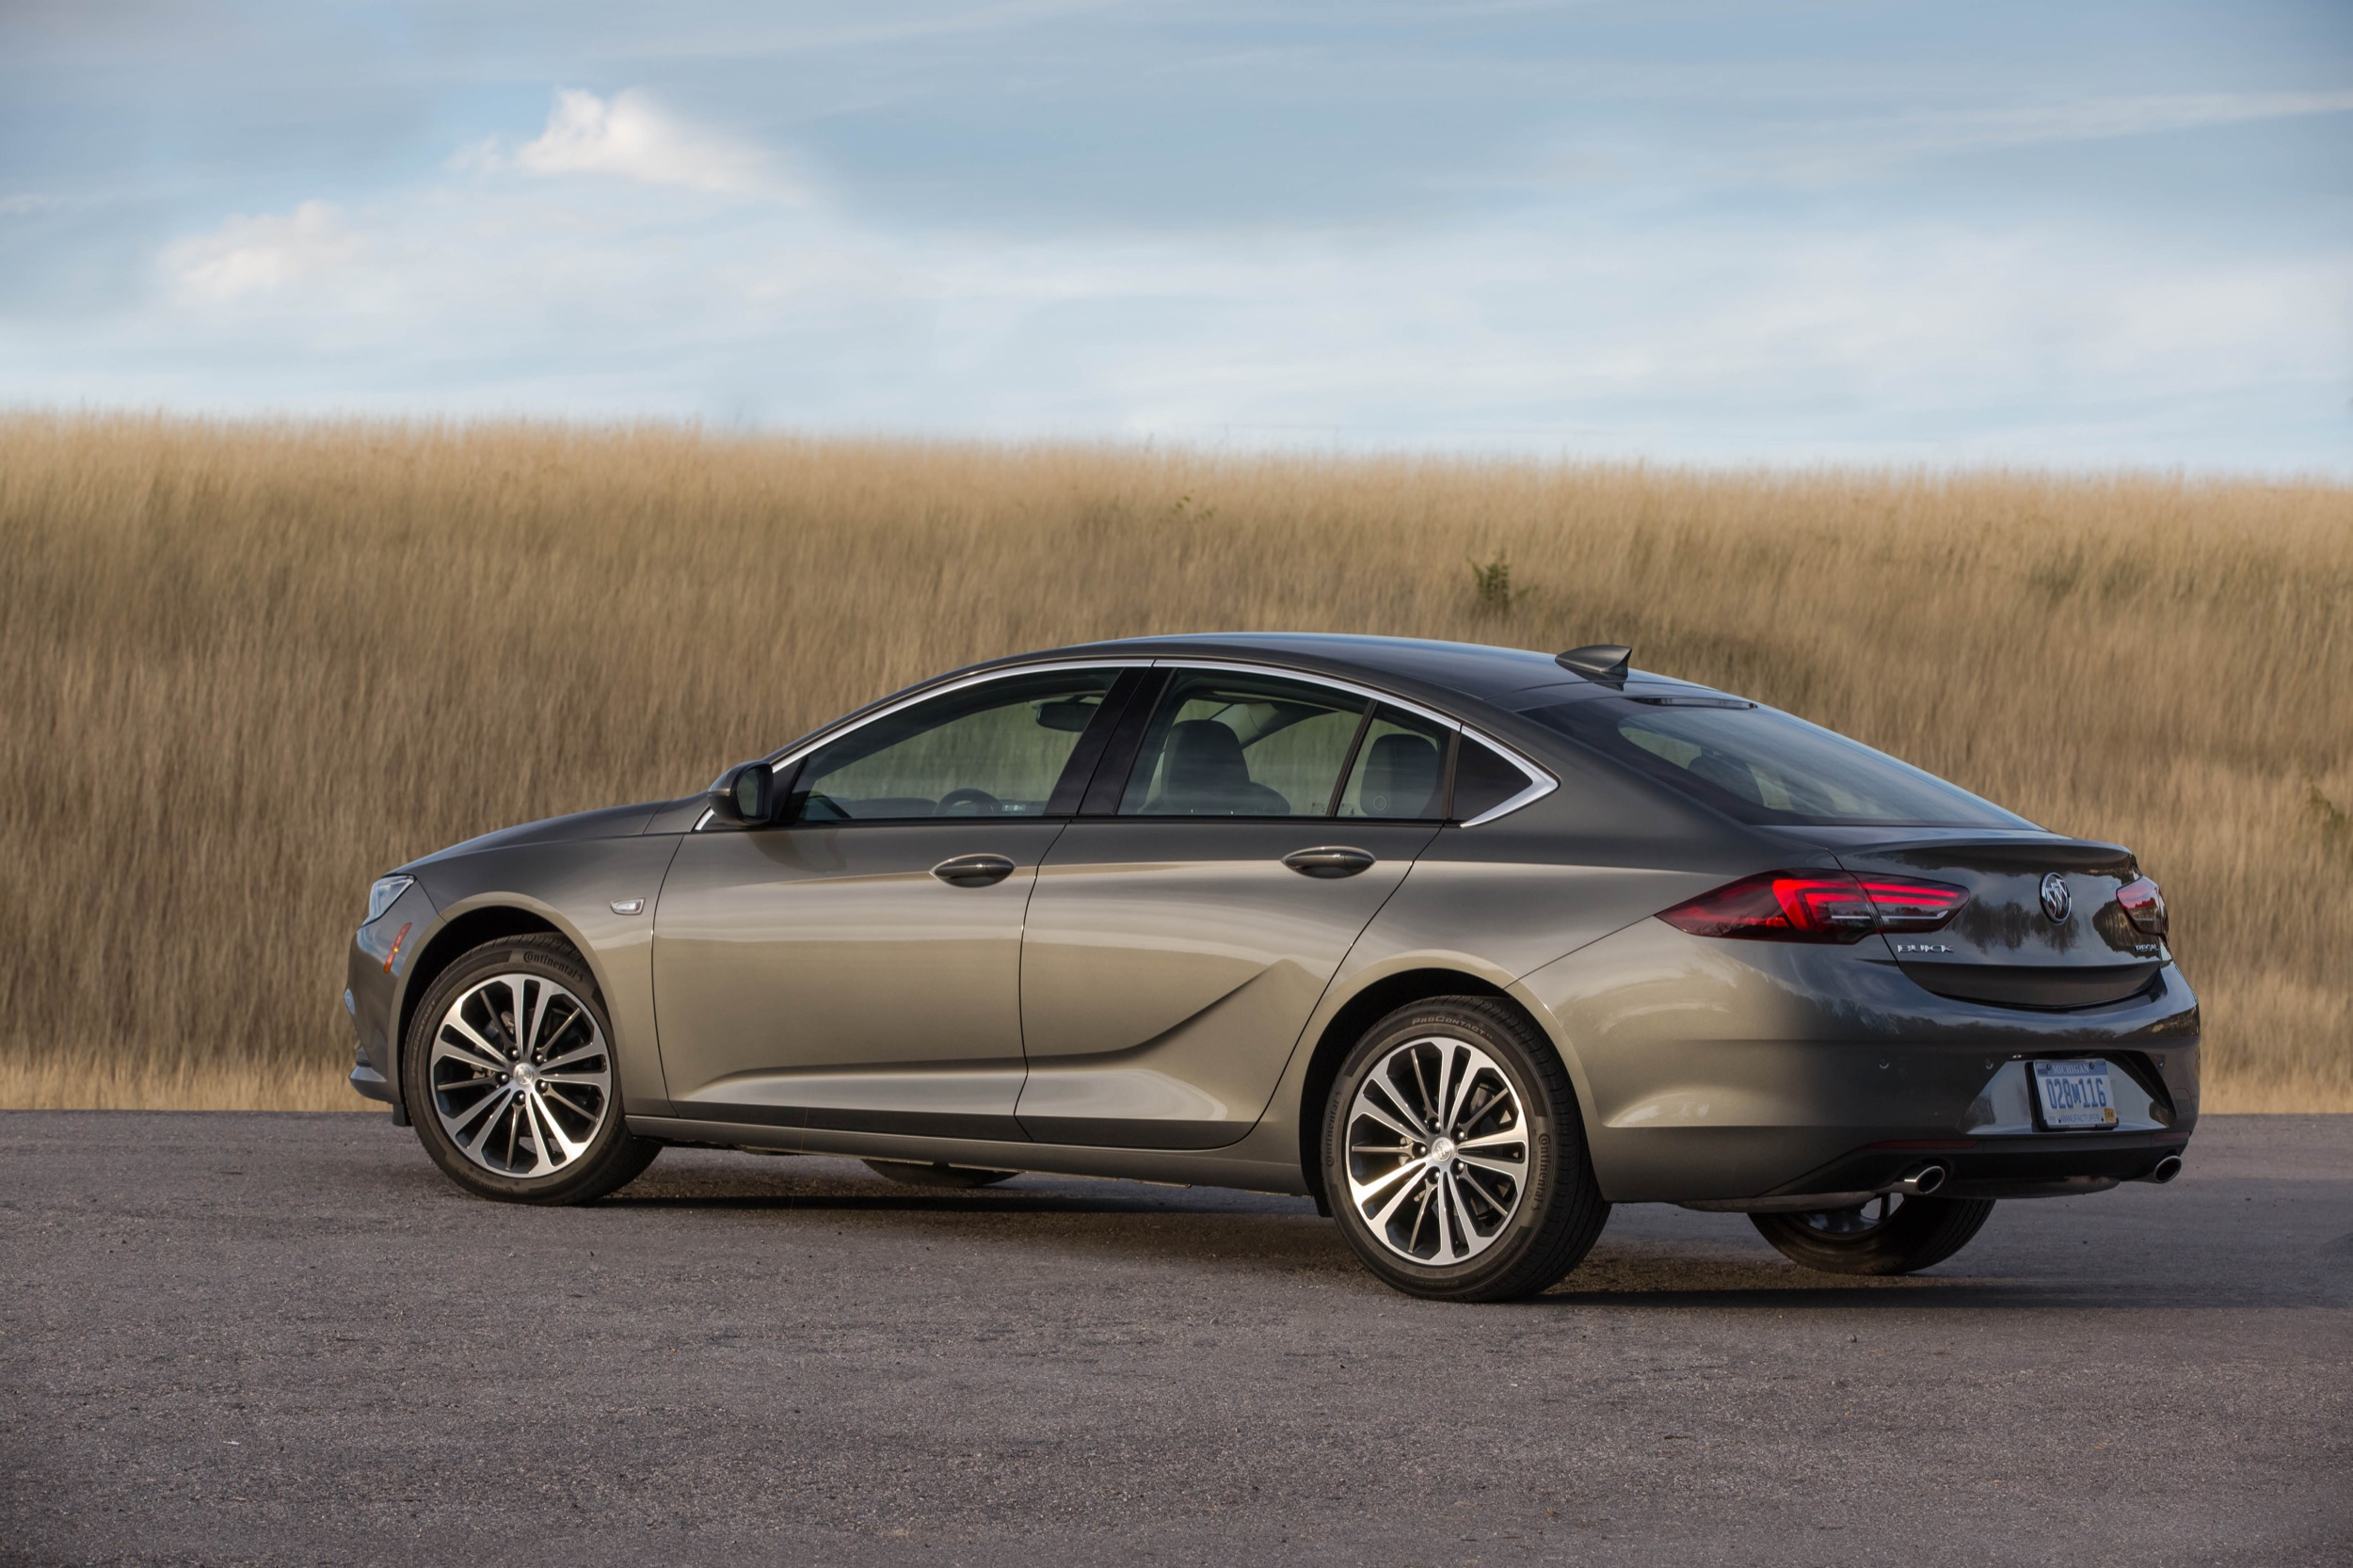 Buick Regal Tops J.d. Power Vehicle Dependability Study | Gm Is The New 2022 Buick Regal A Good Car